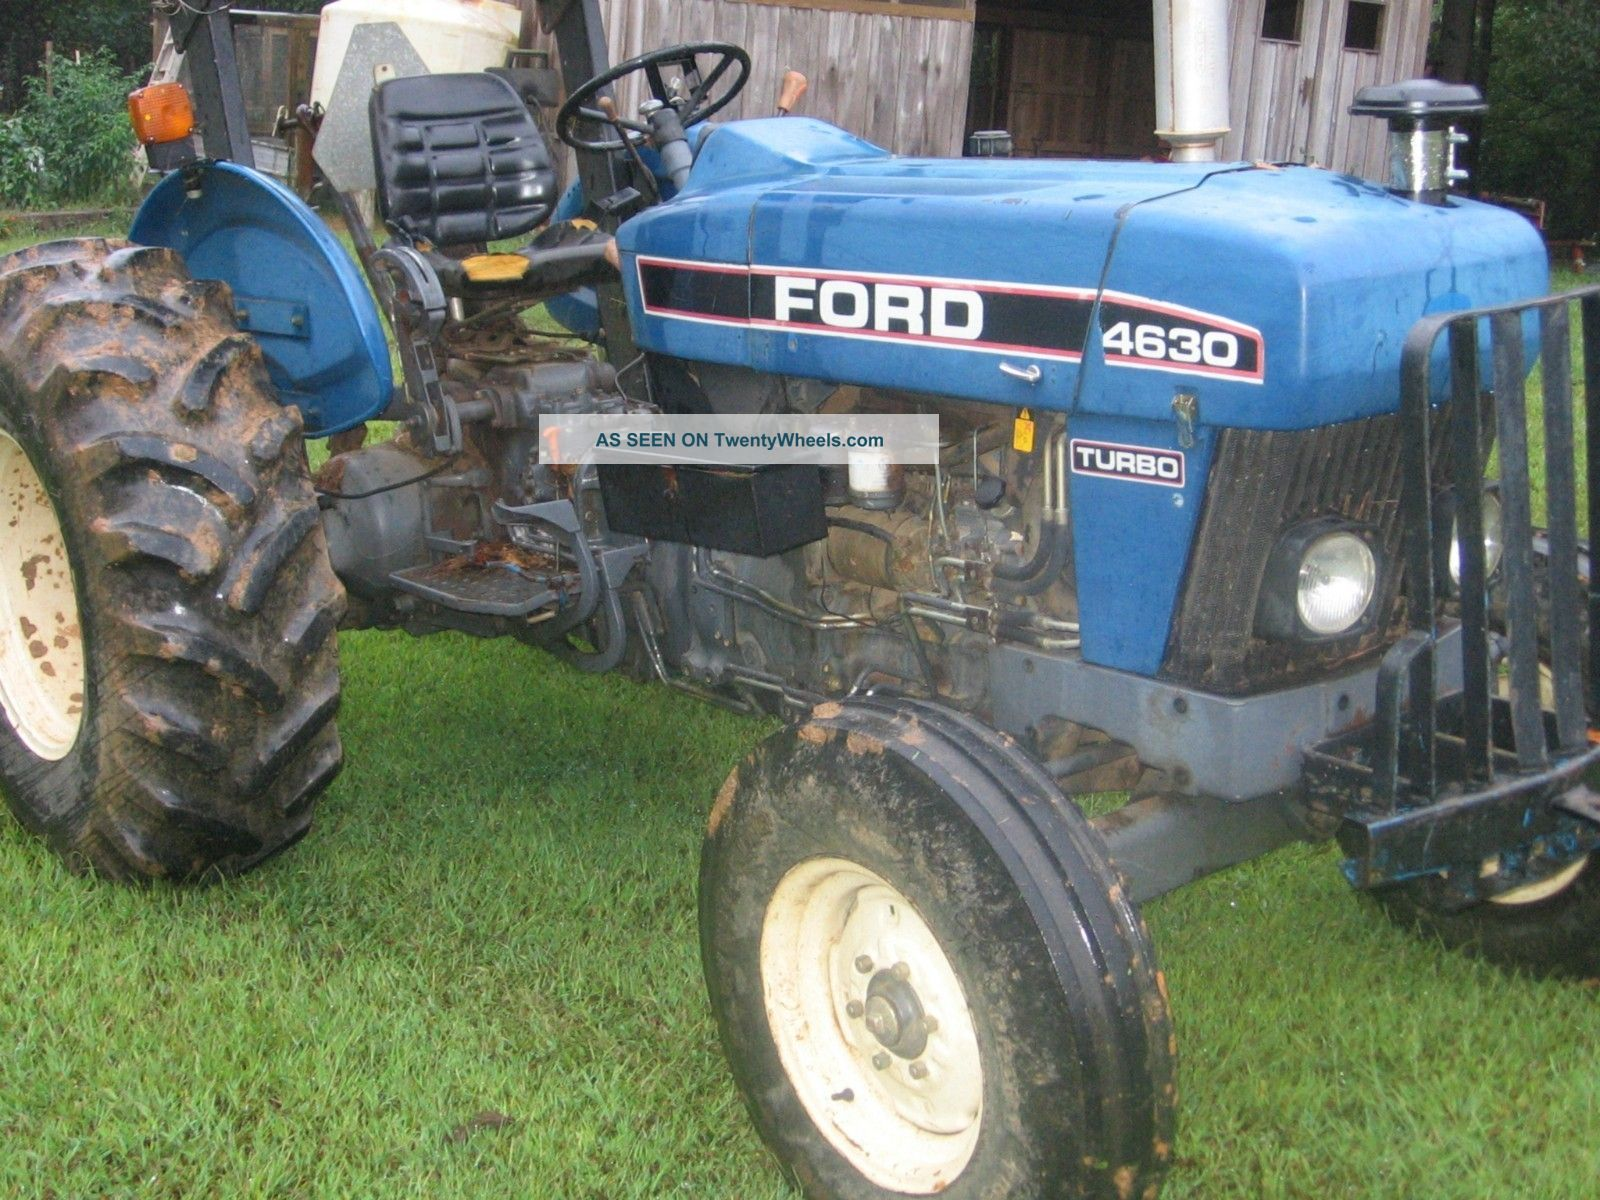 Ford 4630 Tractor Parts Diagram : Ford parts diagram f transmission